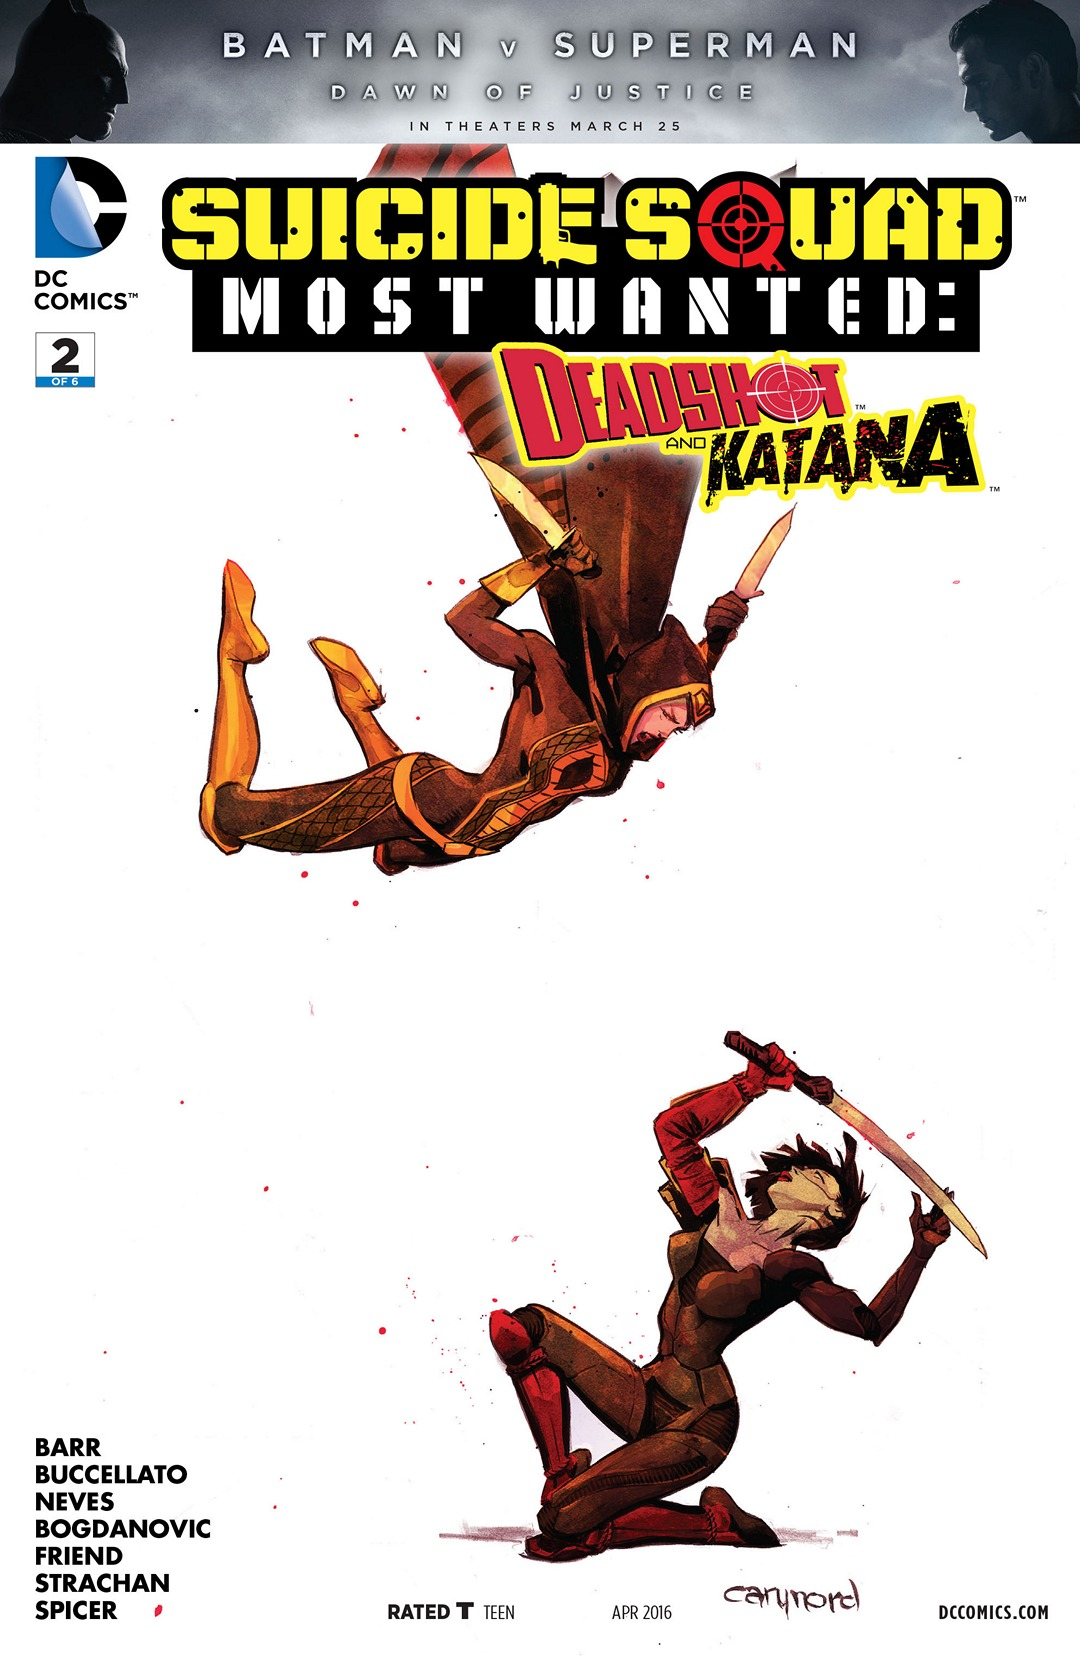 Suicide Squad Most Wanted: Deadshot and Katana Vol 1 2